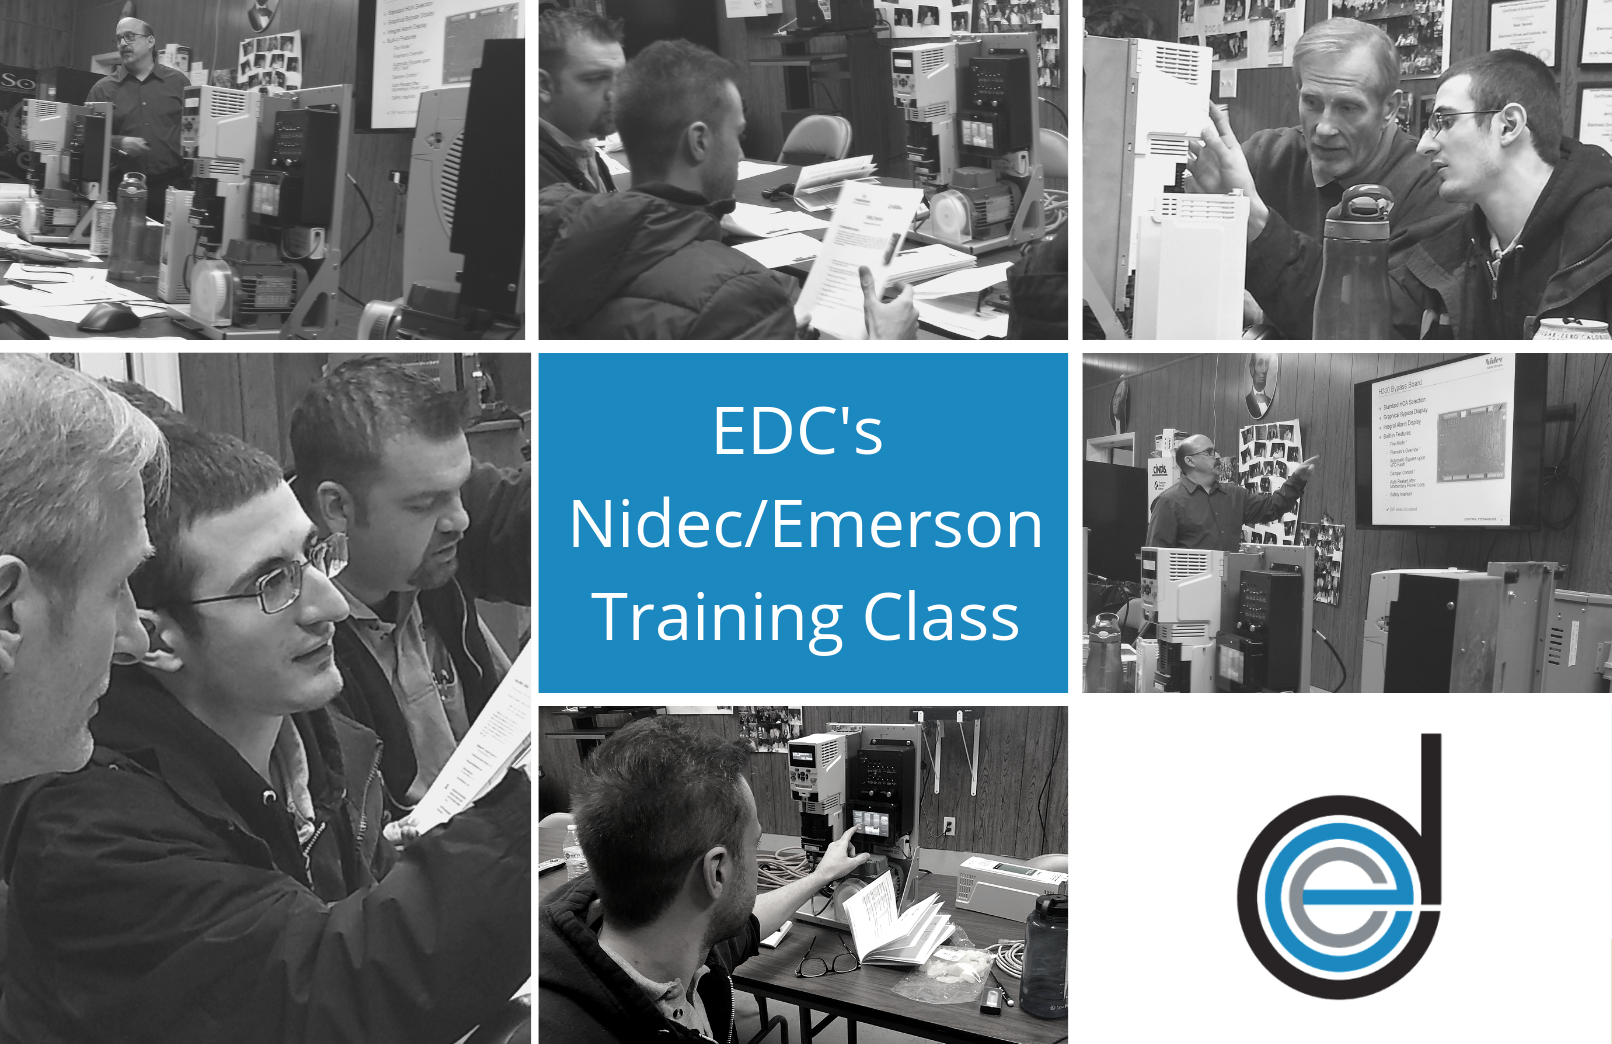 Electronic Drives and Controls Nidec/Emerson Training Class